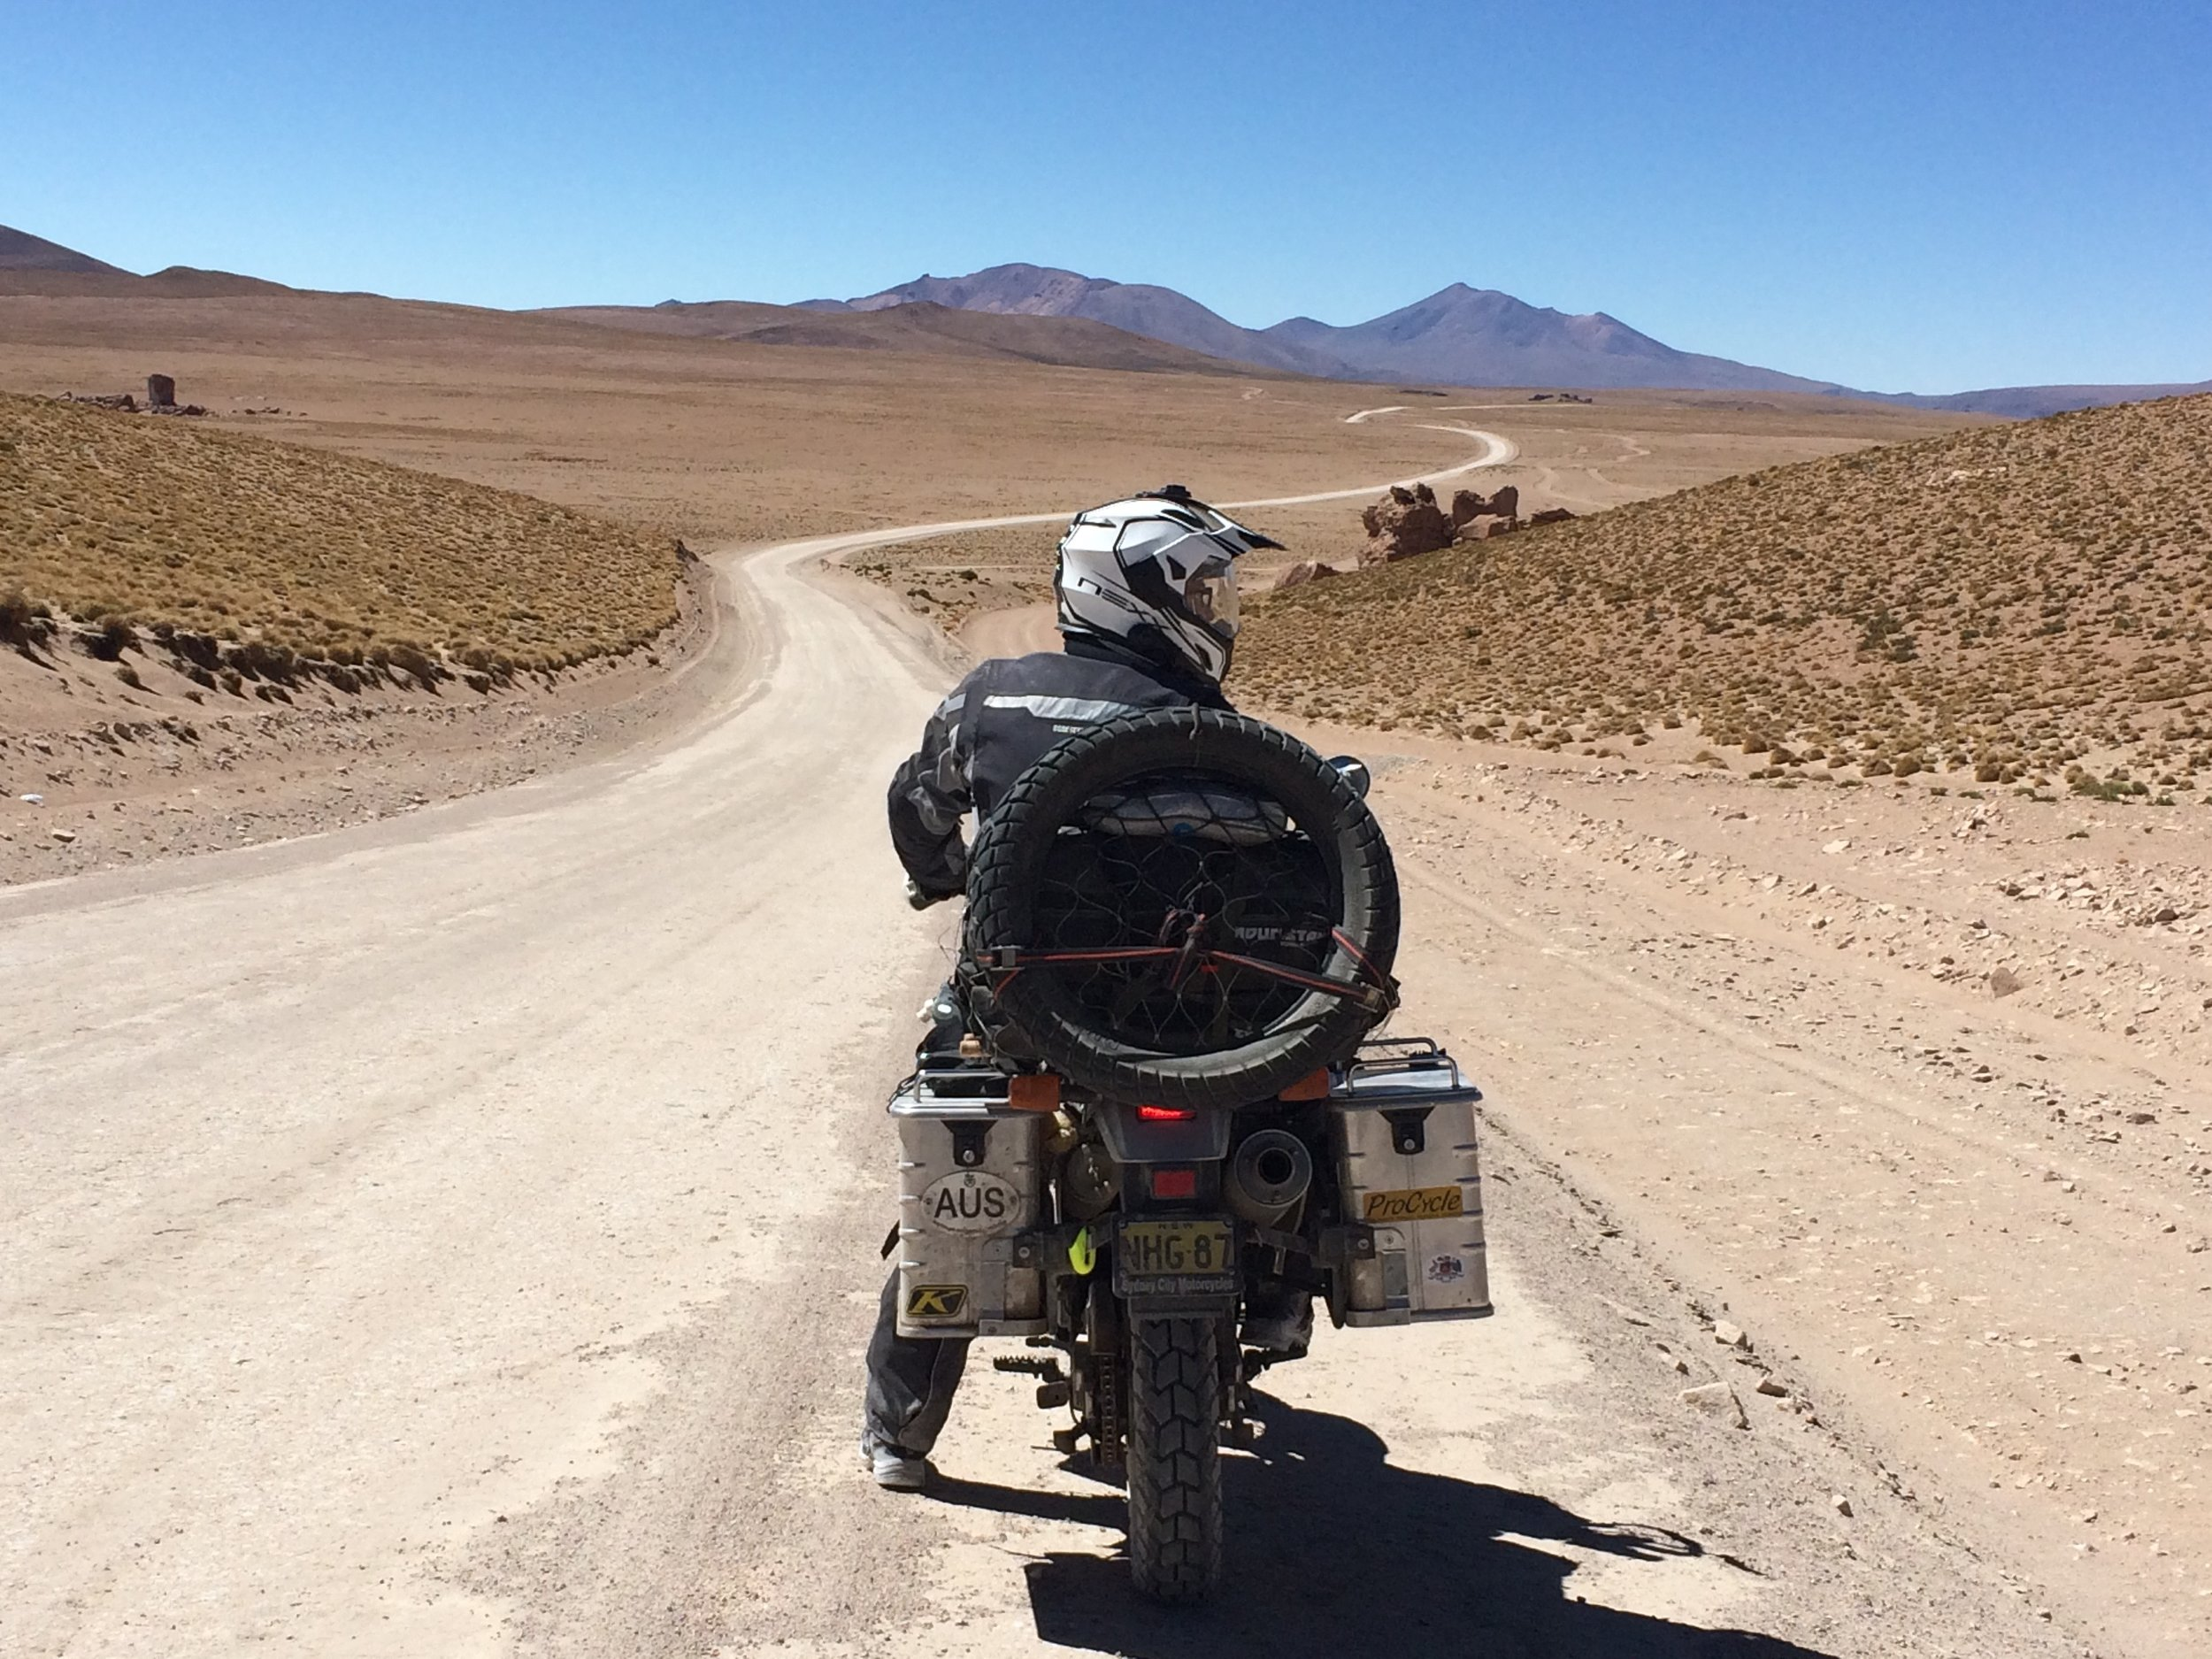 Mainly good gravel roads in Bolivia, except where they are doing construction work.